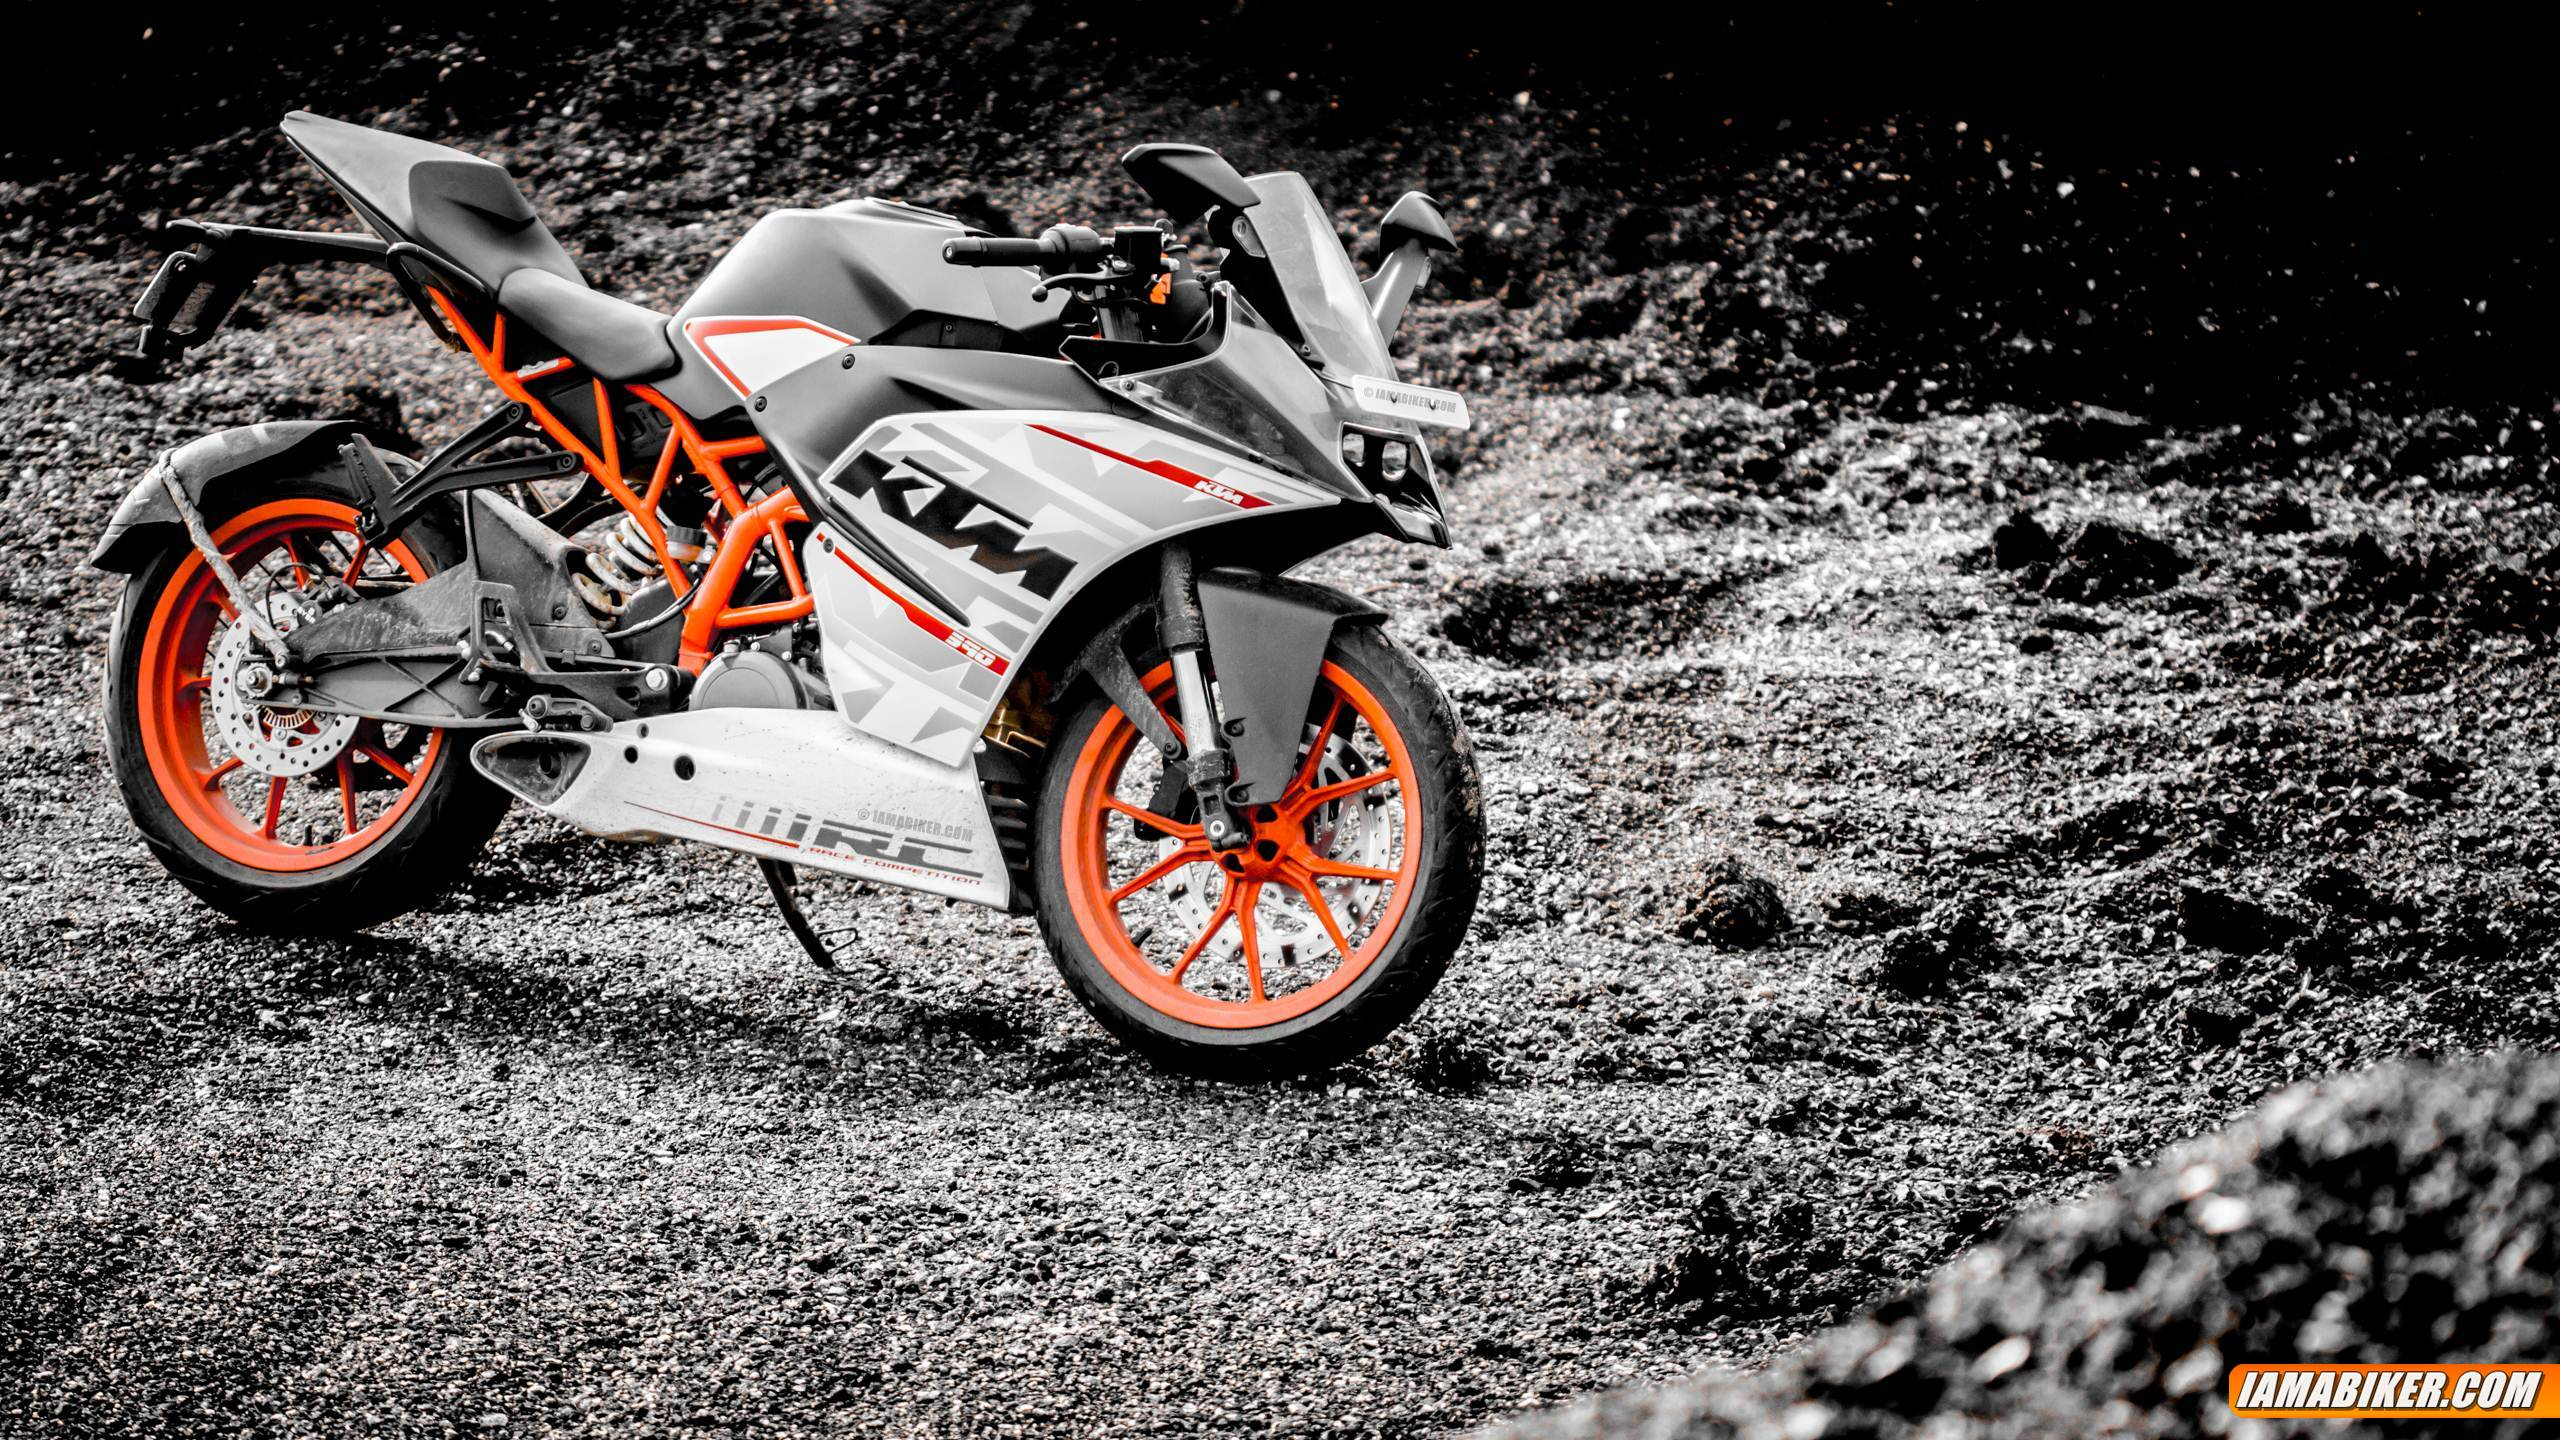 Ktm rc 200 hd wallpapers for pc